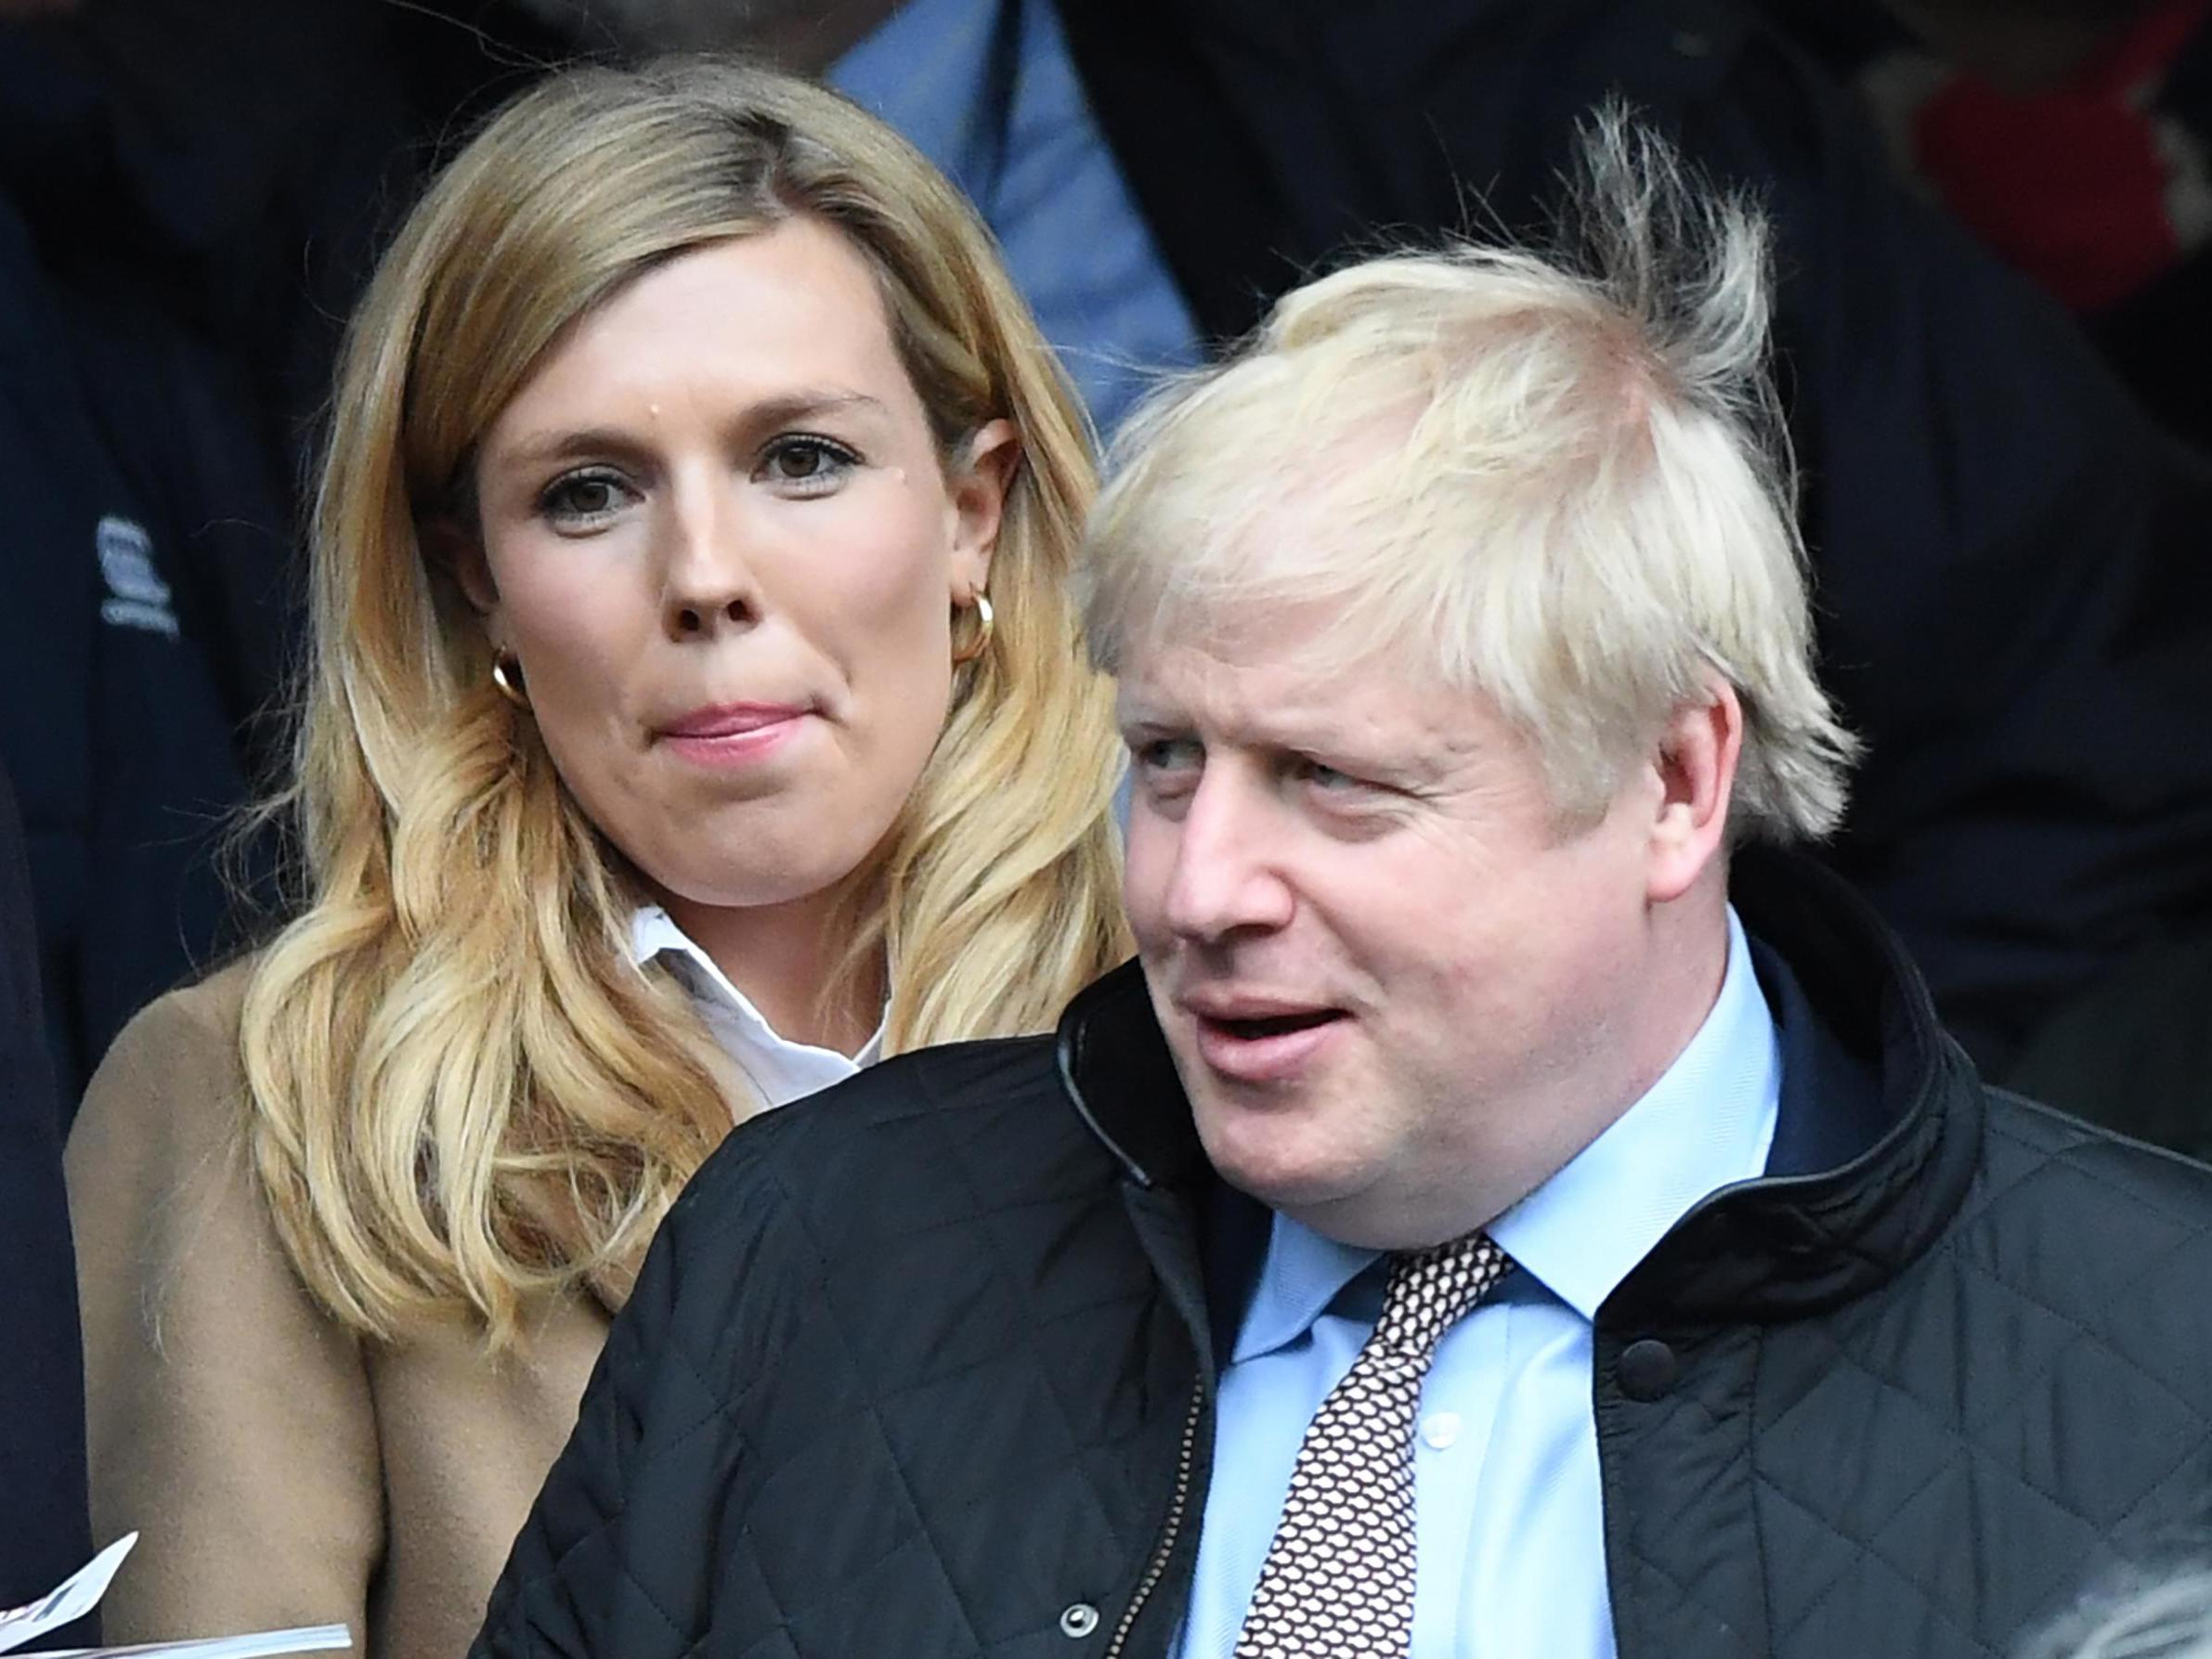 Boris Johnson 'faces parliamentary investigation' over Caribbean holiday | The IndependentShapeleftrightShape